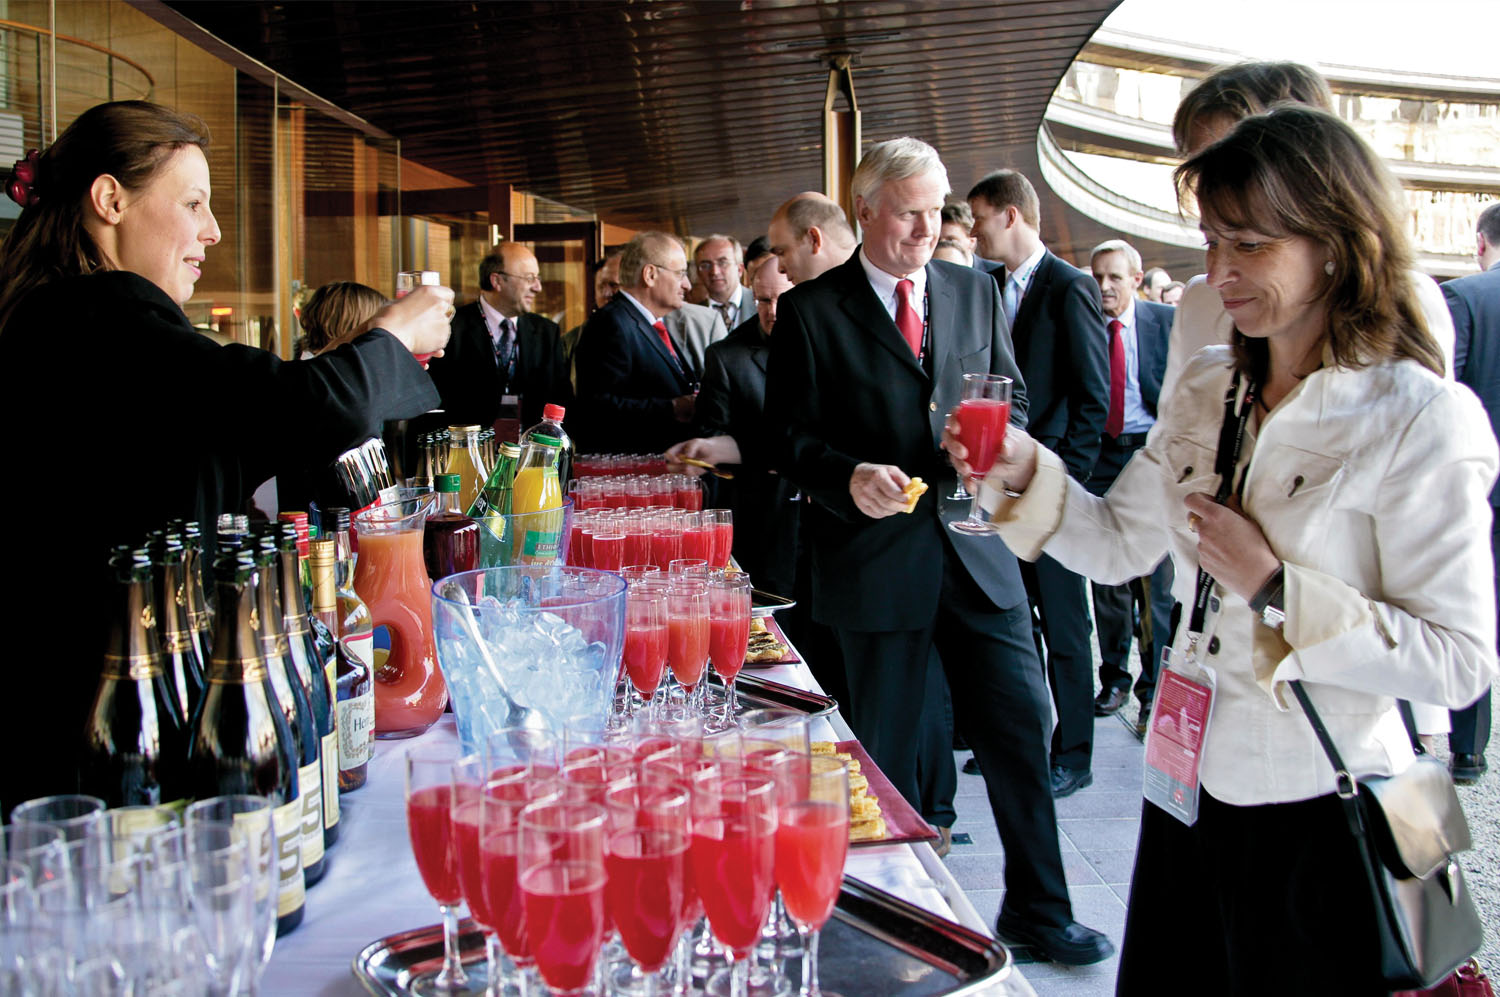 Event Marketing - no detail was too small. Red champagne cocktails were poured from 50th Anniversary branded bottles